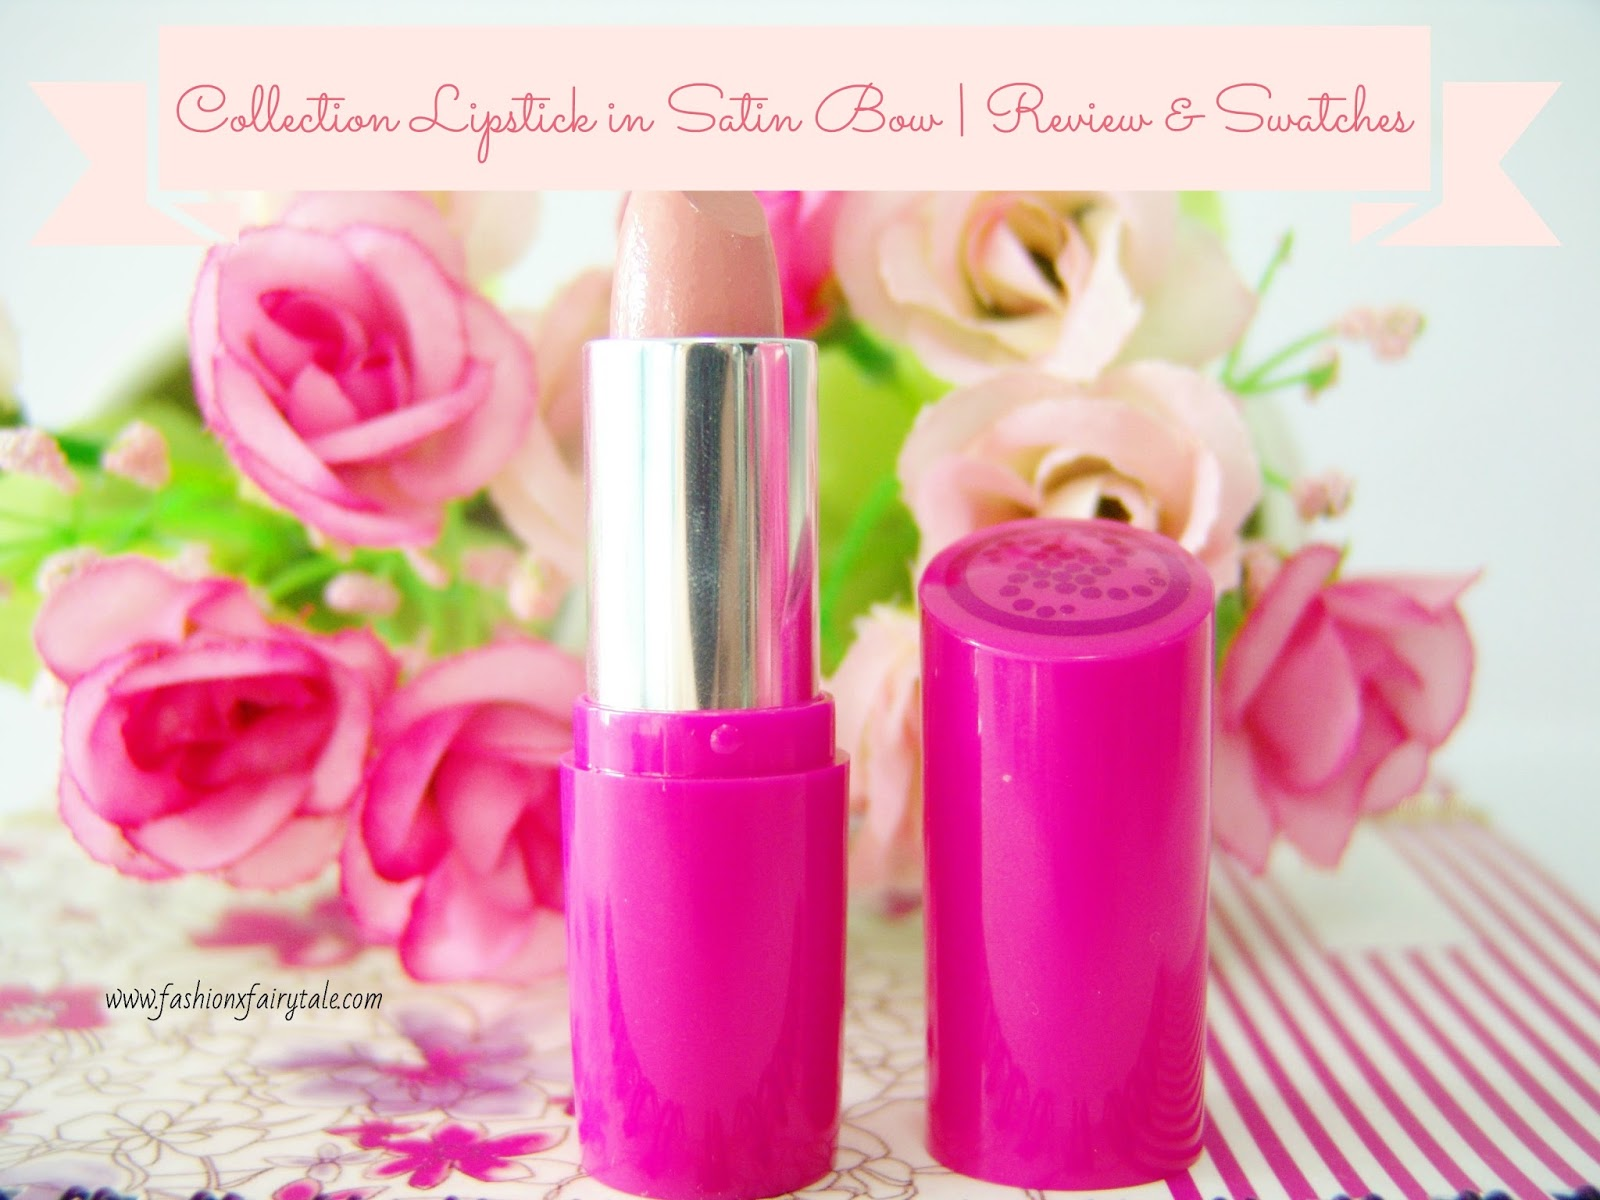 Collection Volume Sensation Lipstick in Satin Bow | Review & Swatches